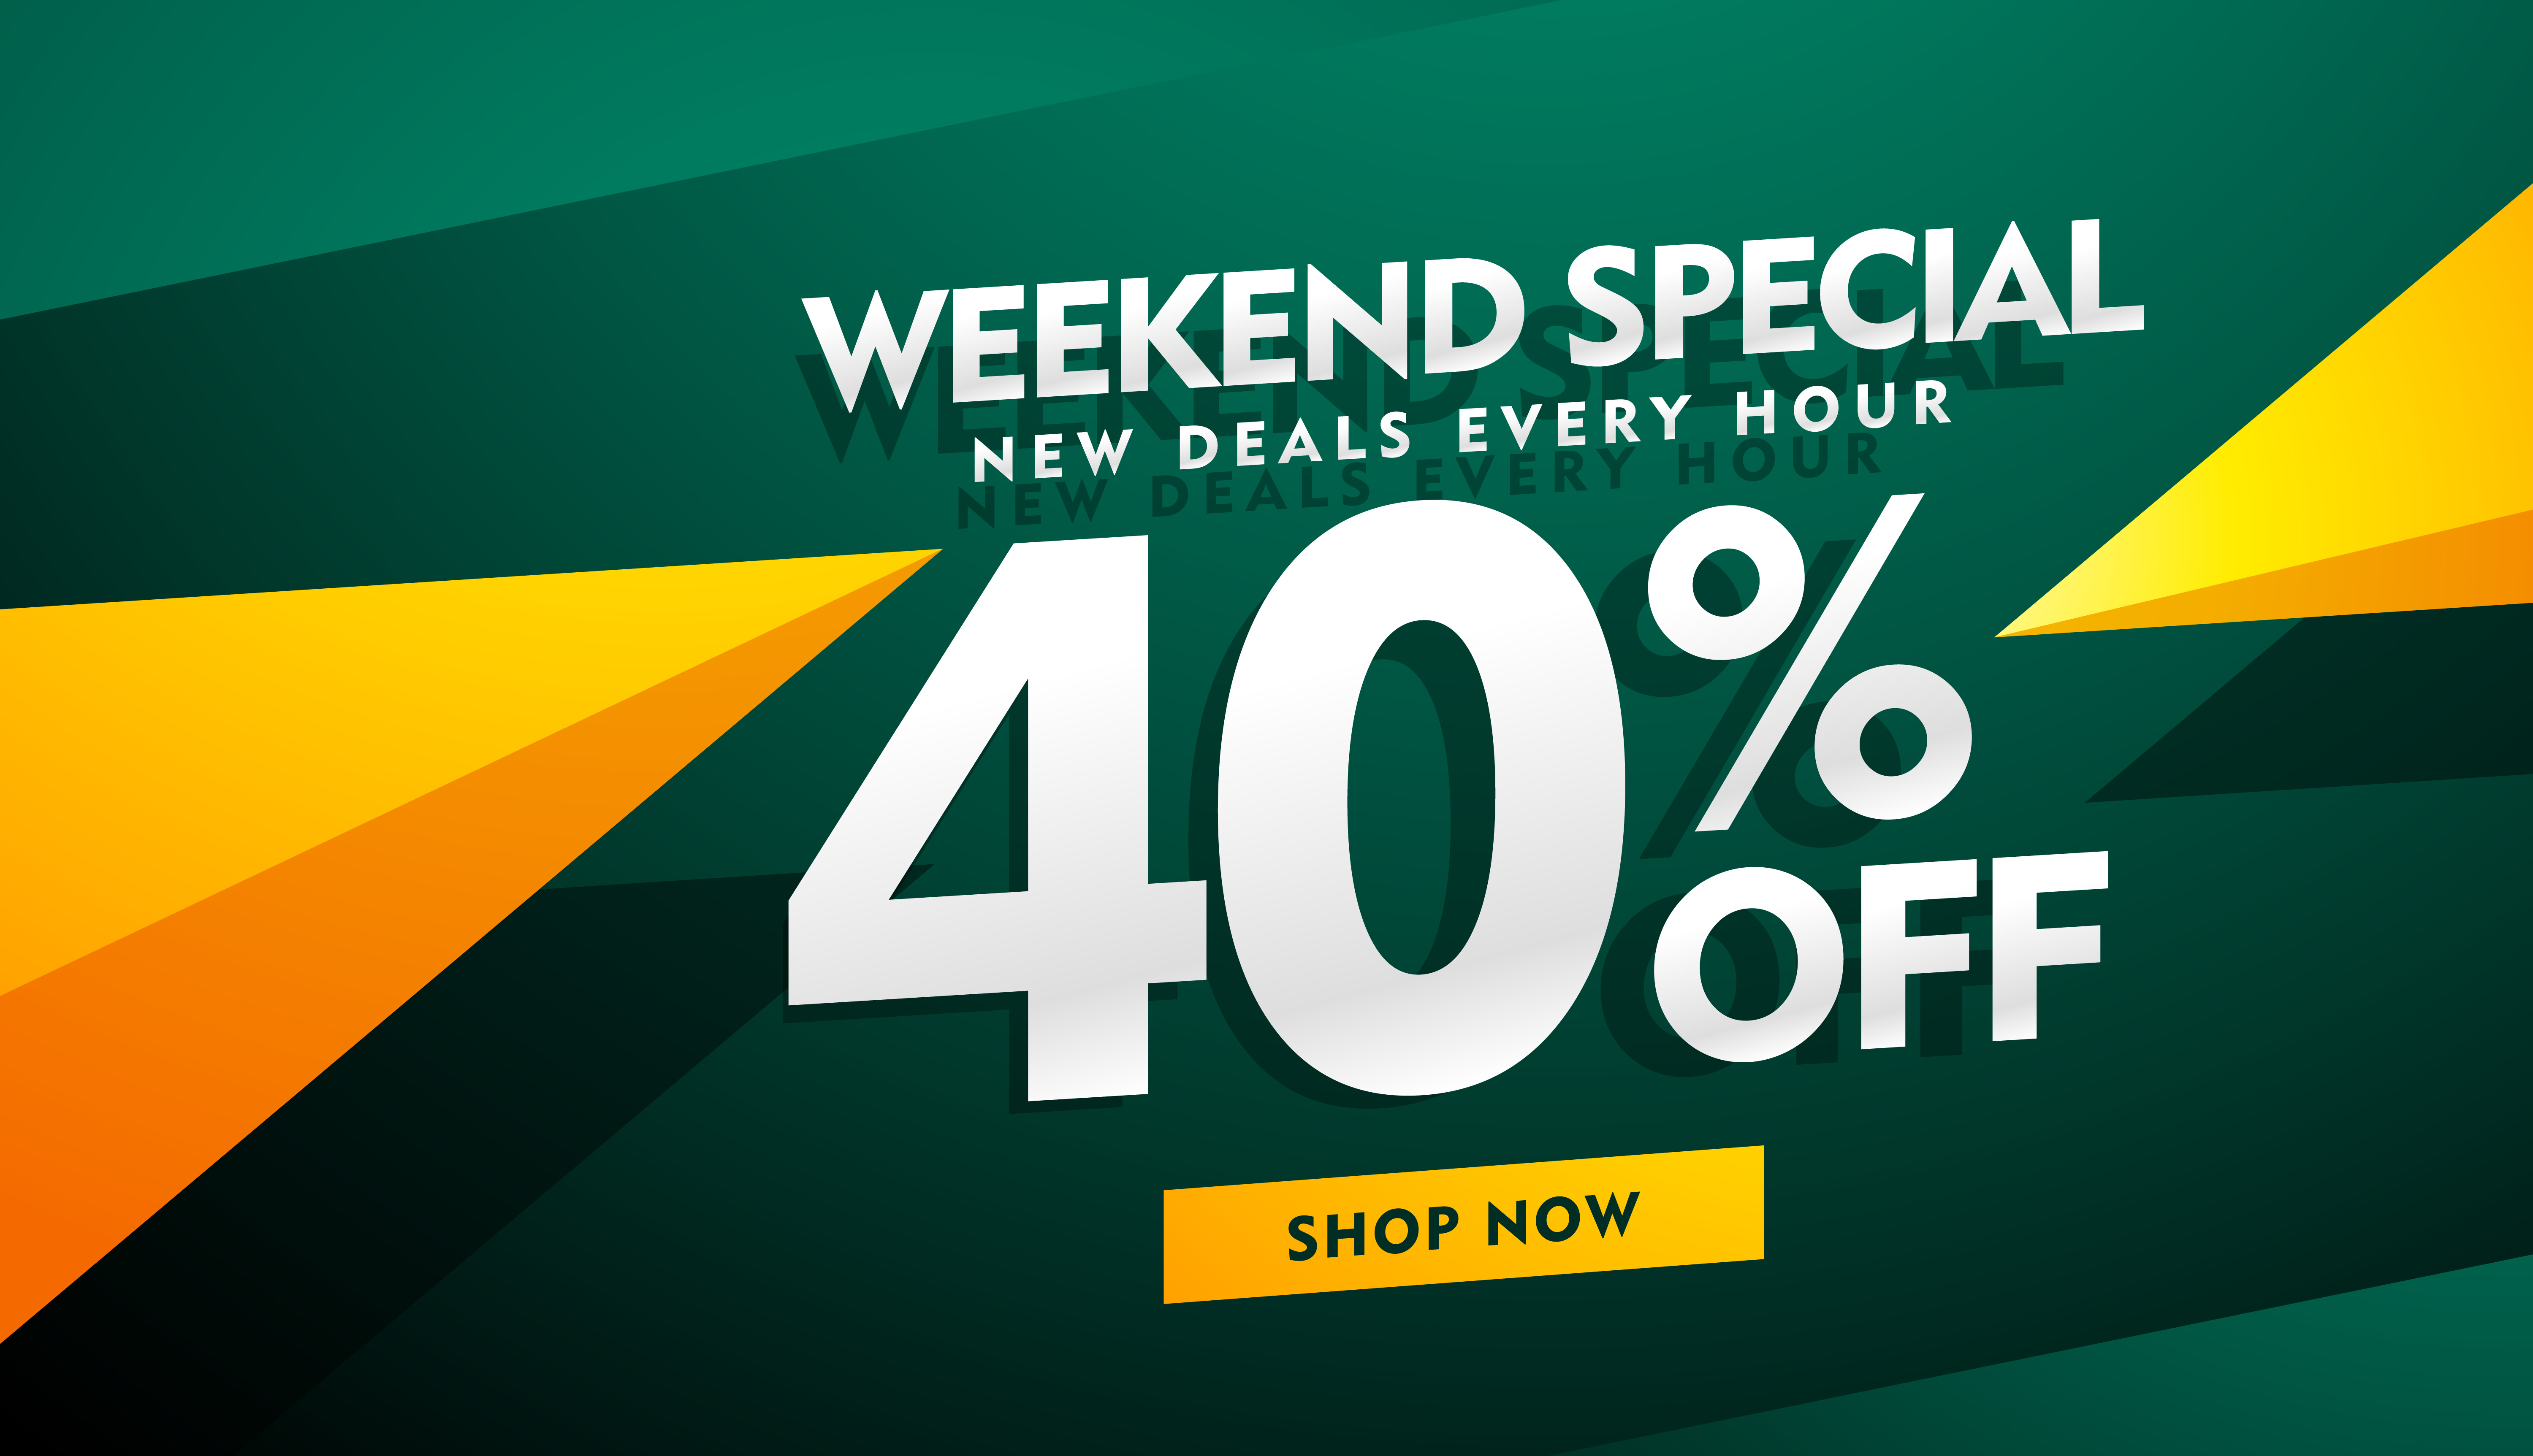 weekend special sale banner design in green and yellow